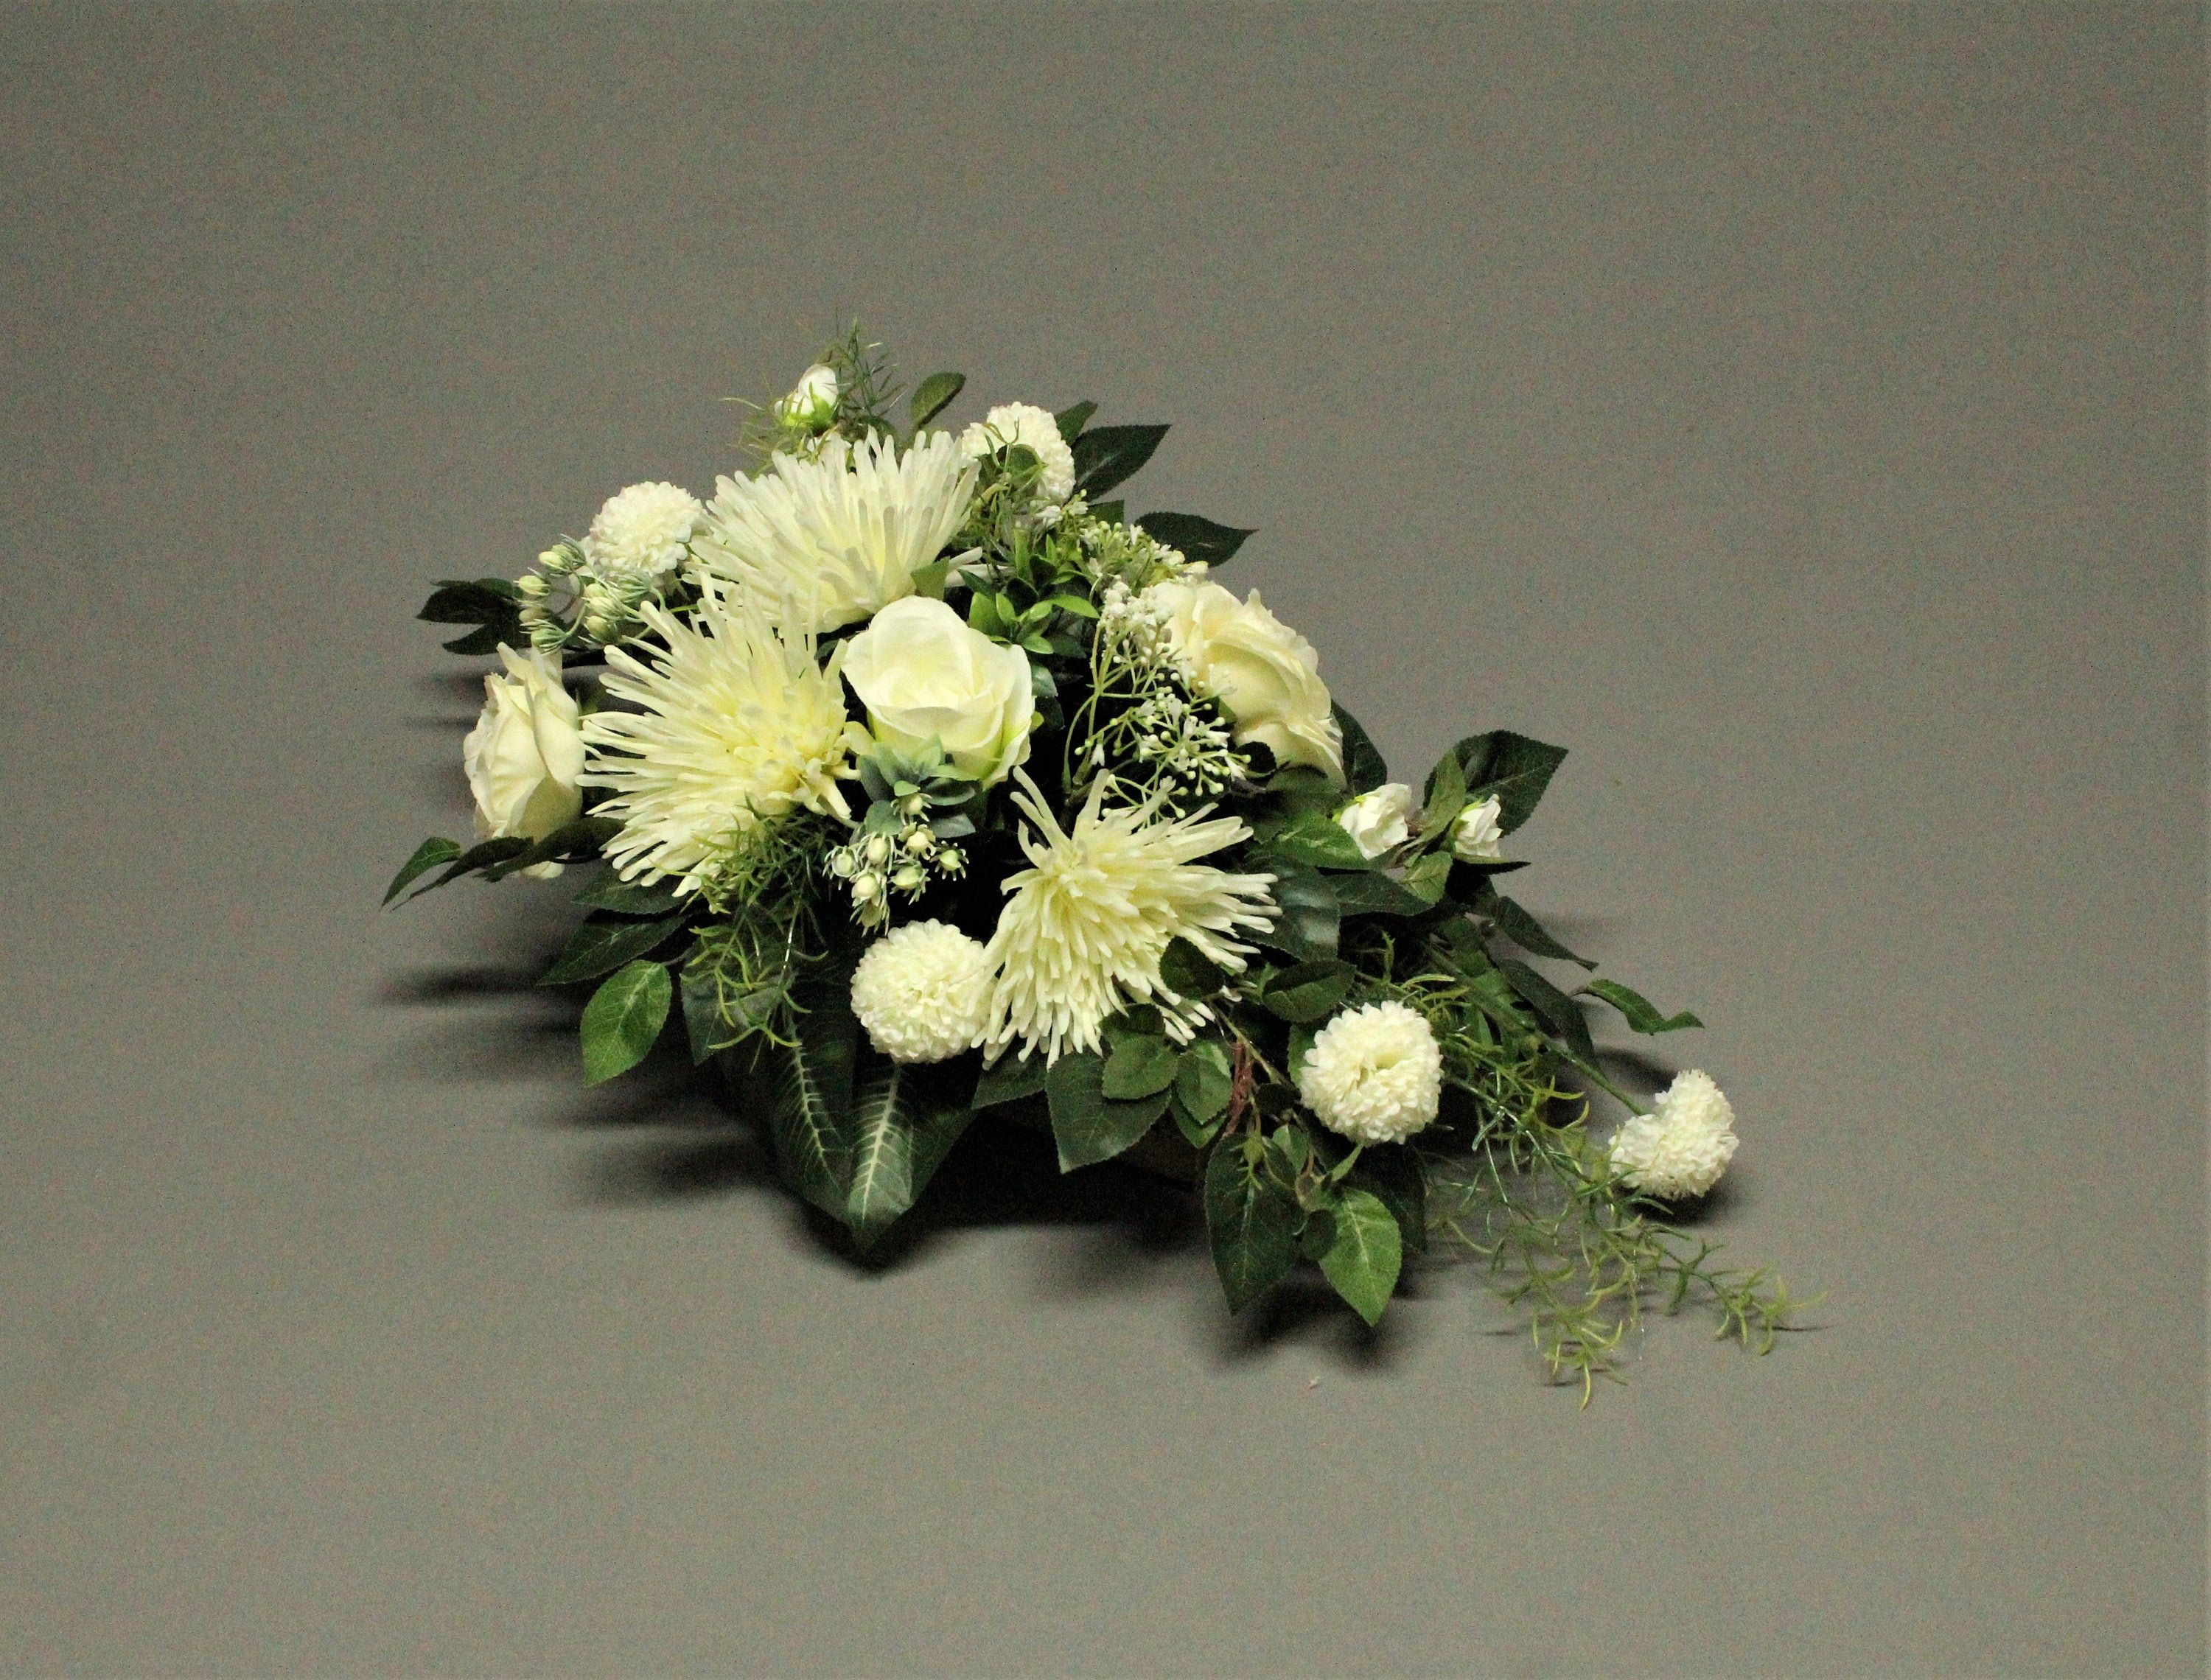 Tombstone Decoration Artificial Flowers Decoration For Monument Tomb Reed Cemetery Decorations Feast Of The Dead Mourning Decorations Cemetery Decorations Artificial Flowers Funeral Flower Arrangements